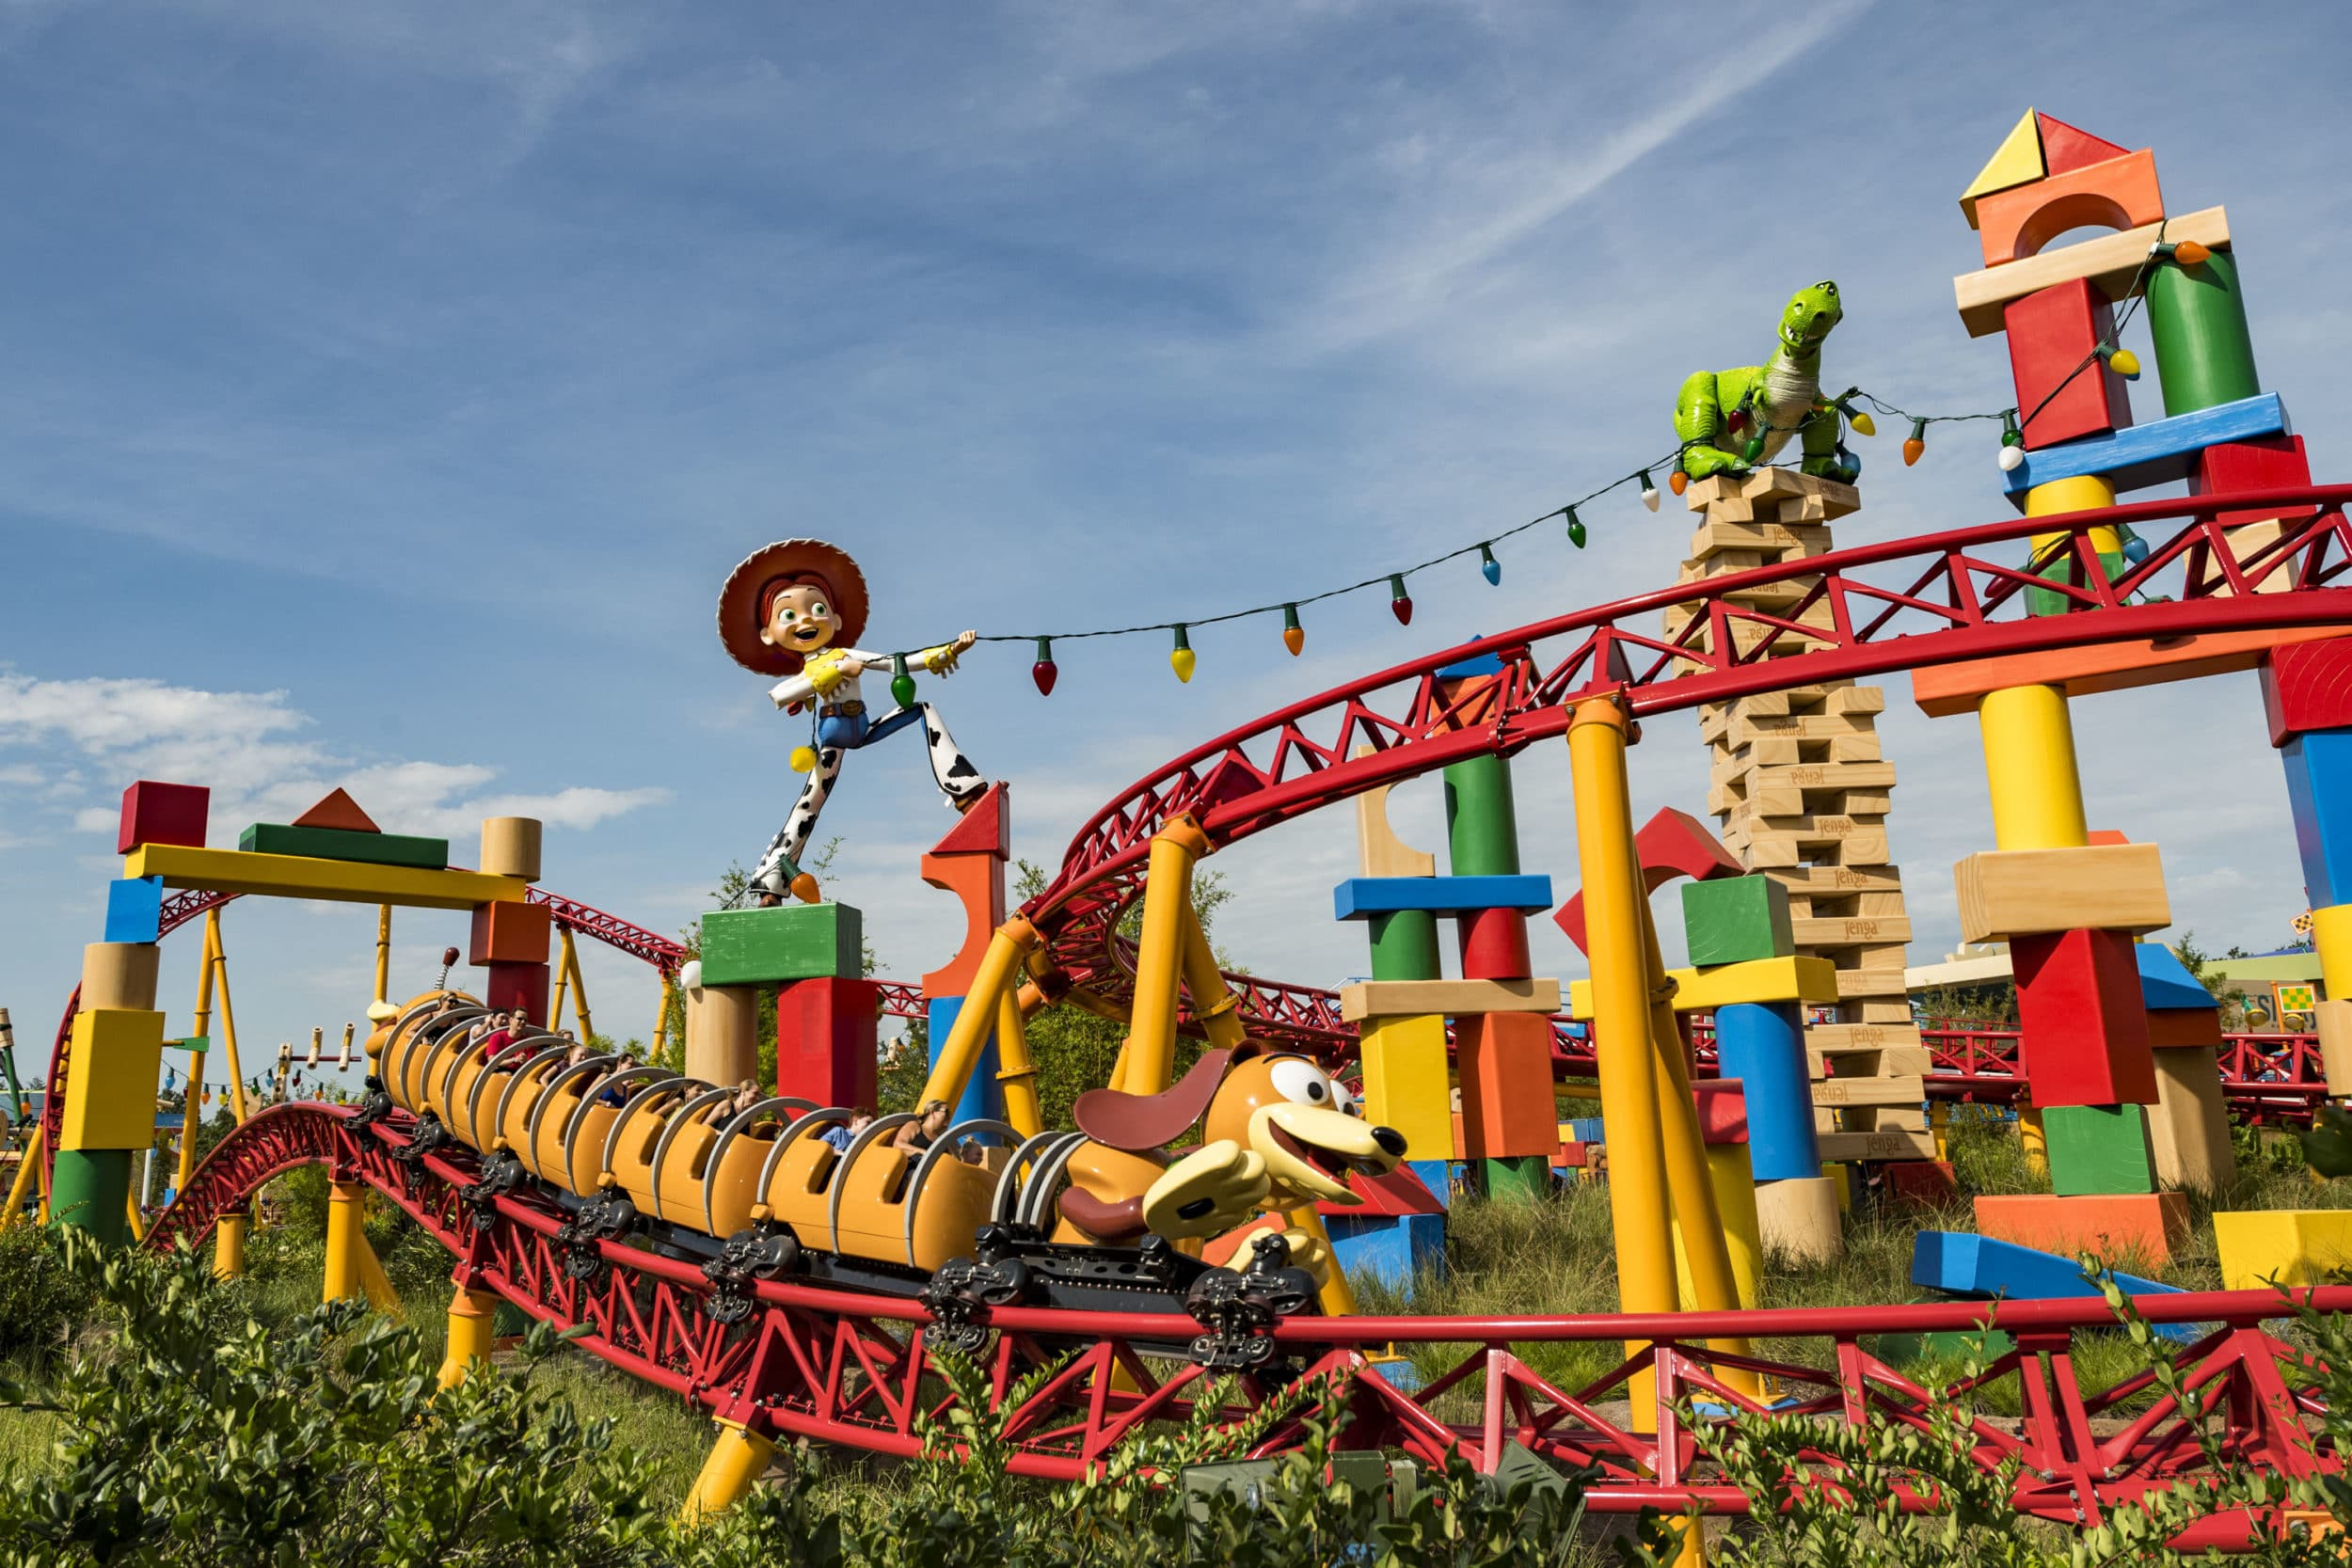 Slinky Dog Dash at Toy Story Land, a themed land at Walt Disney World